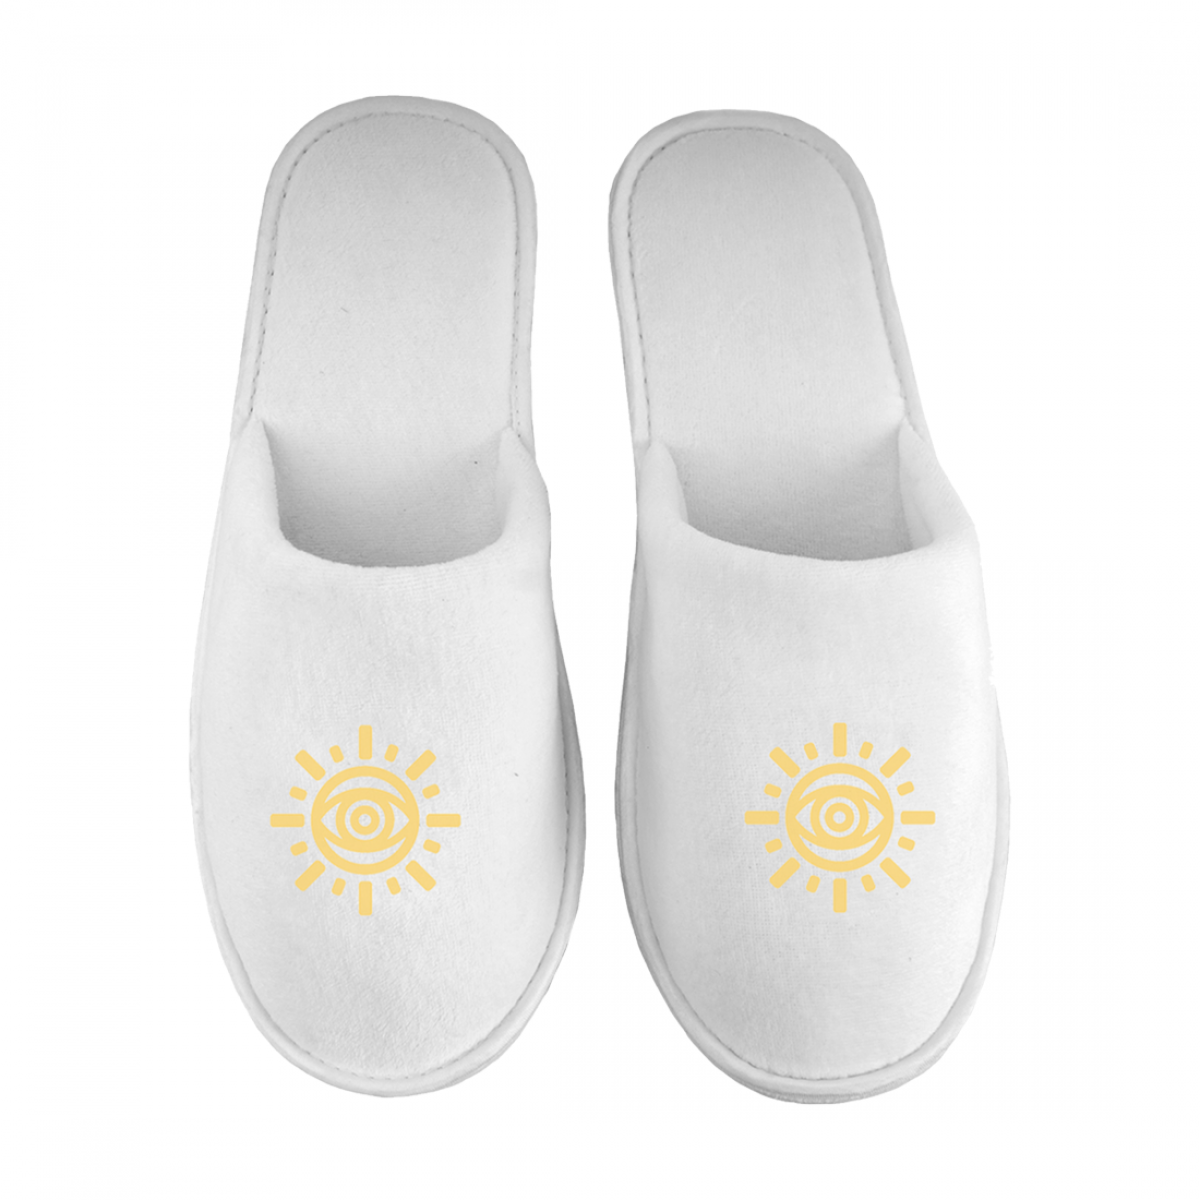 SUNSHINE MEN'S SLIPPERS